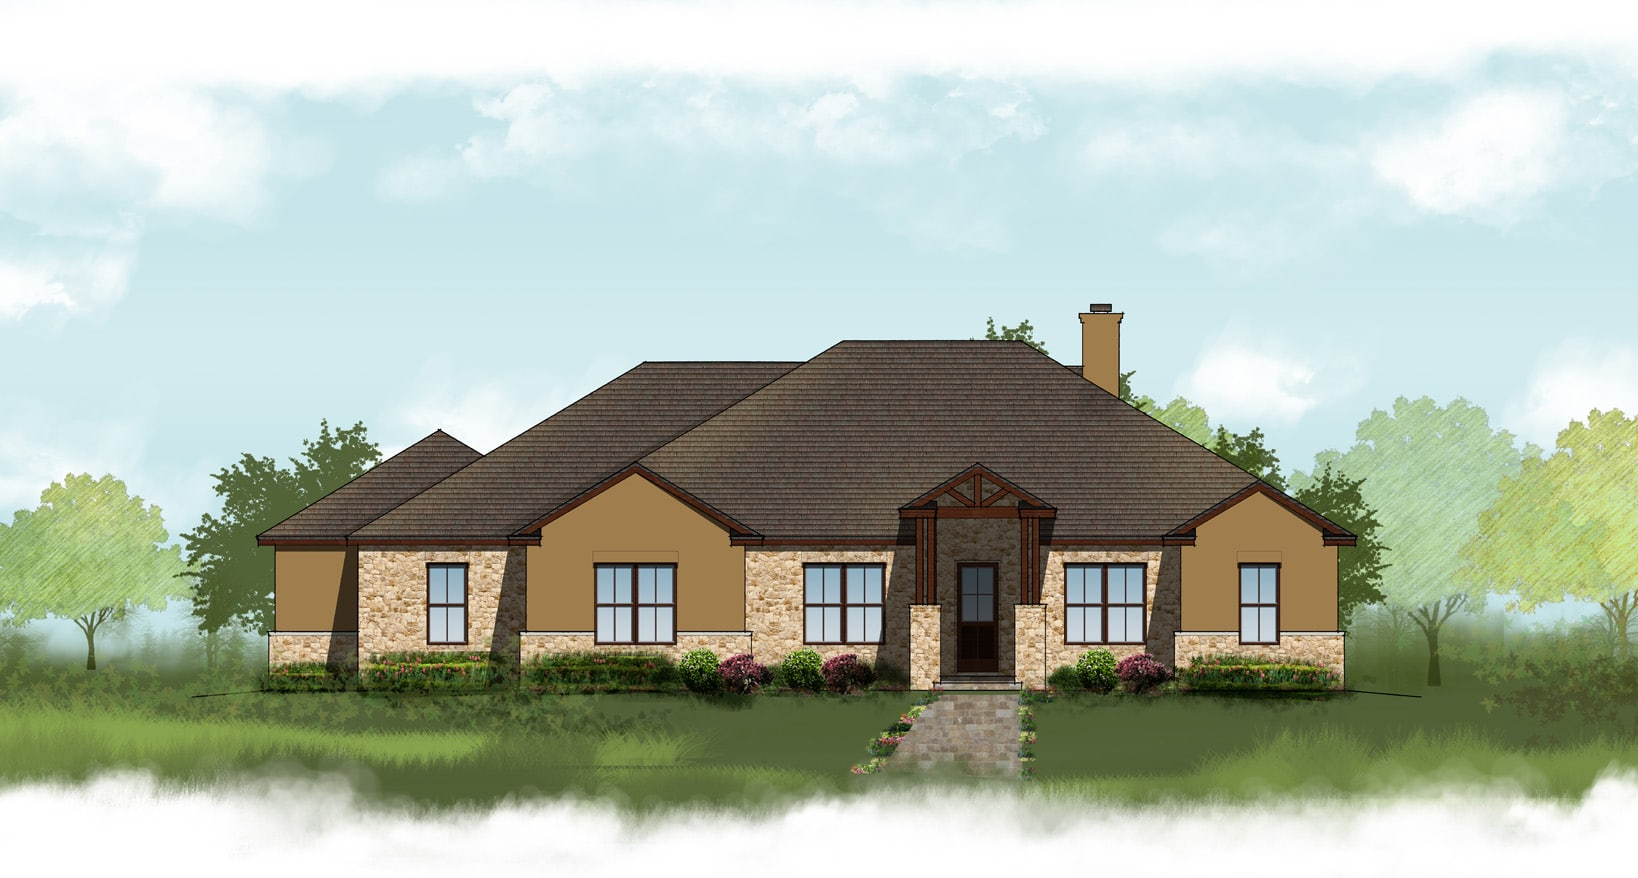 The Osage Clear Rock Homes